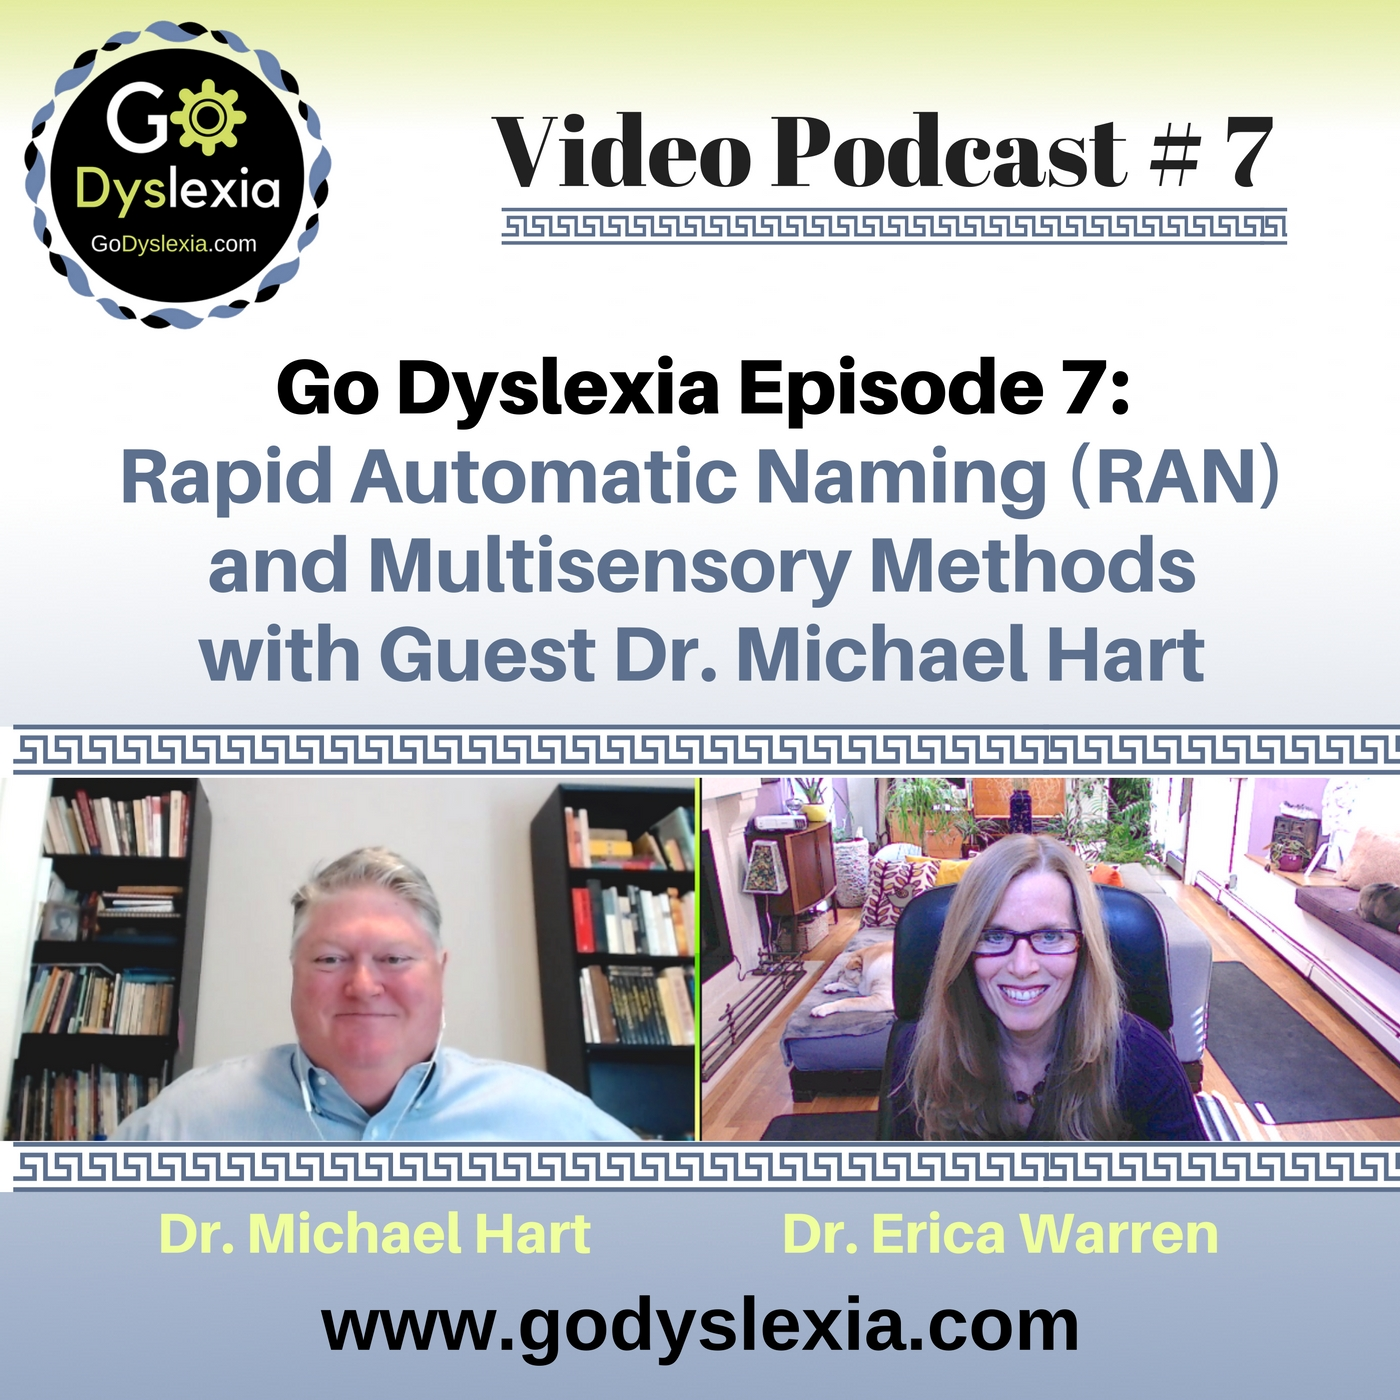 Go Dyslexia Episode 7: Rapid Automatic Naming and Multisensory Methods with Guest Dr. Michael Hart and Host Dr. Erica Warren